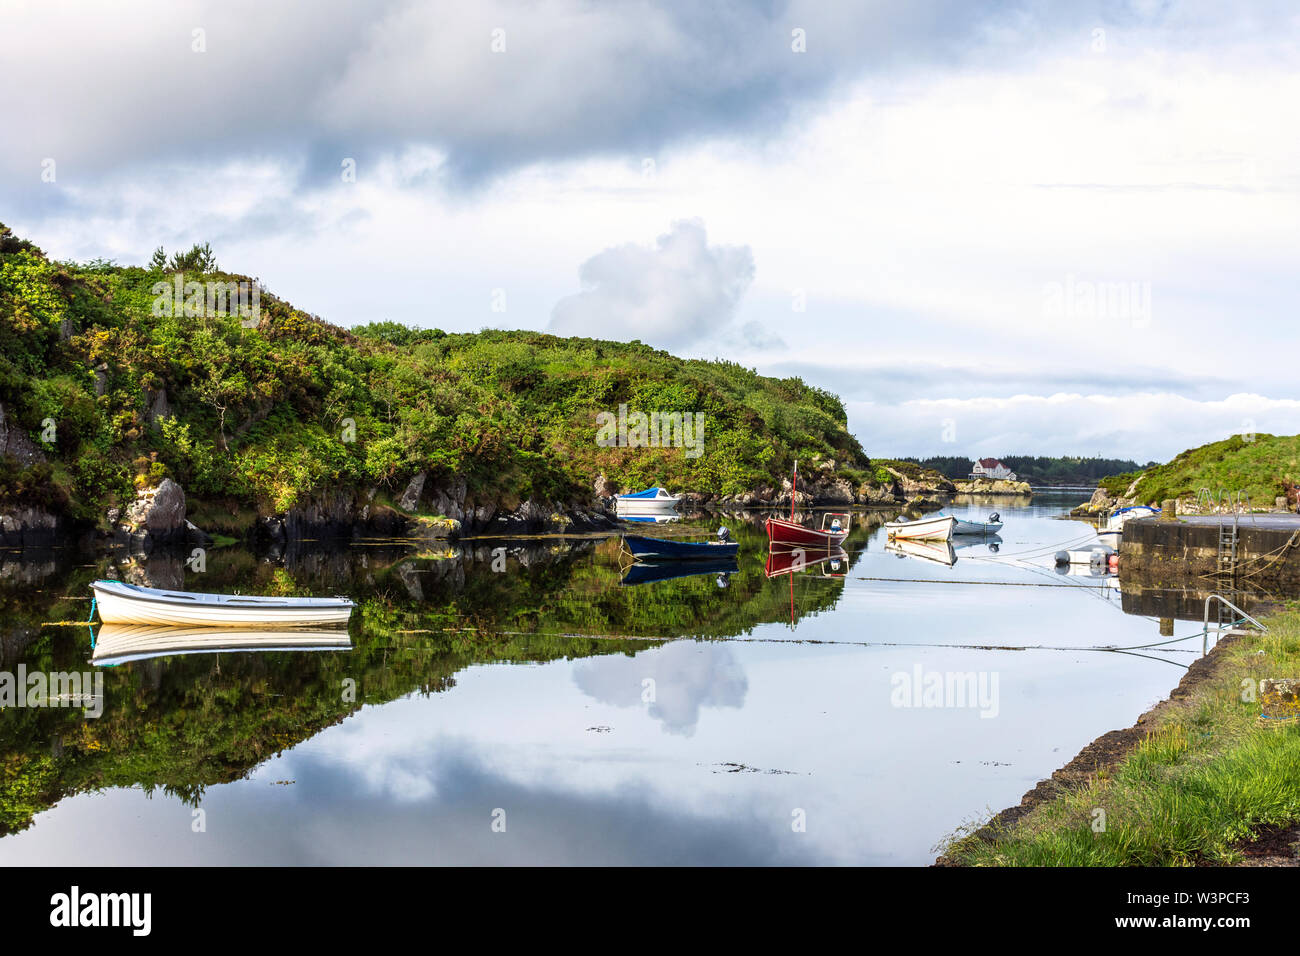 Lackeg harbour near Burtonport, County Donegal, Ireland. A small fishing port in The Rosses region on the north-west coast. - Stock Image